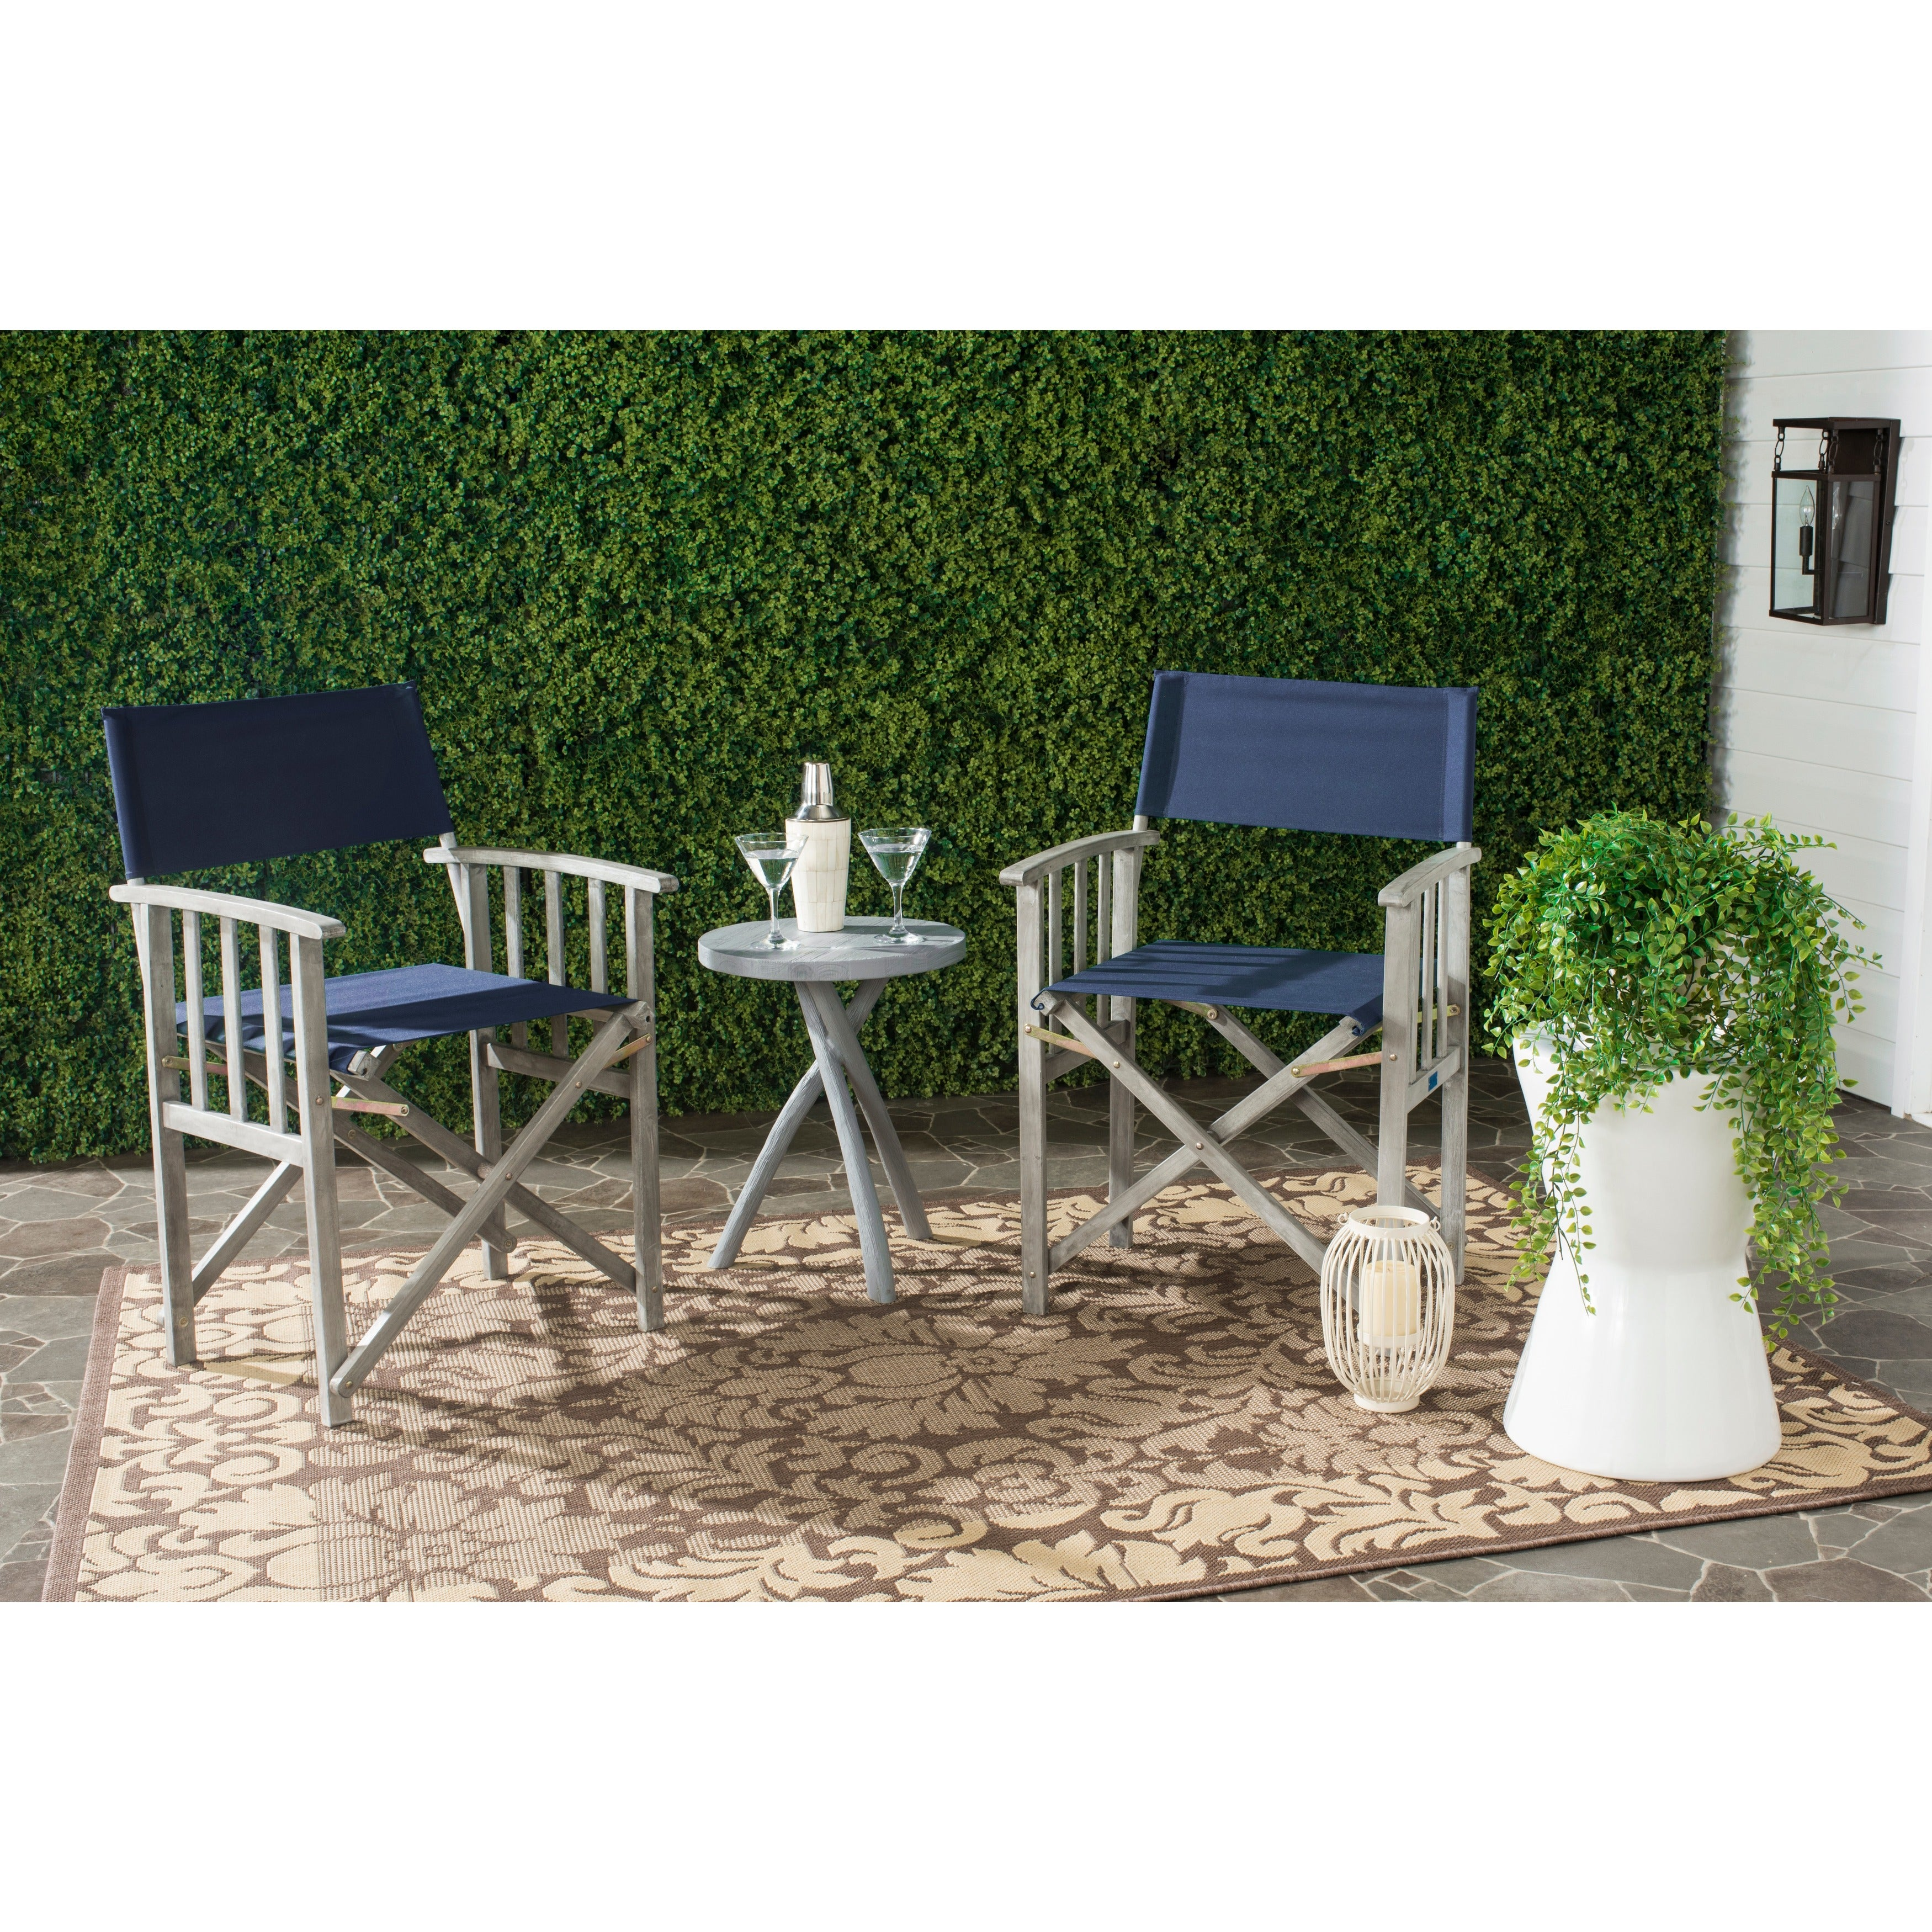 Outstanding Details About Safavieh Outdoor Living Laguna Navy Director Chair Set Of Brown Green 2 Piece Gmtry Best Dining Table And Chair Ideas Images Gmtryco